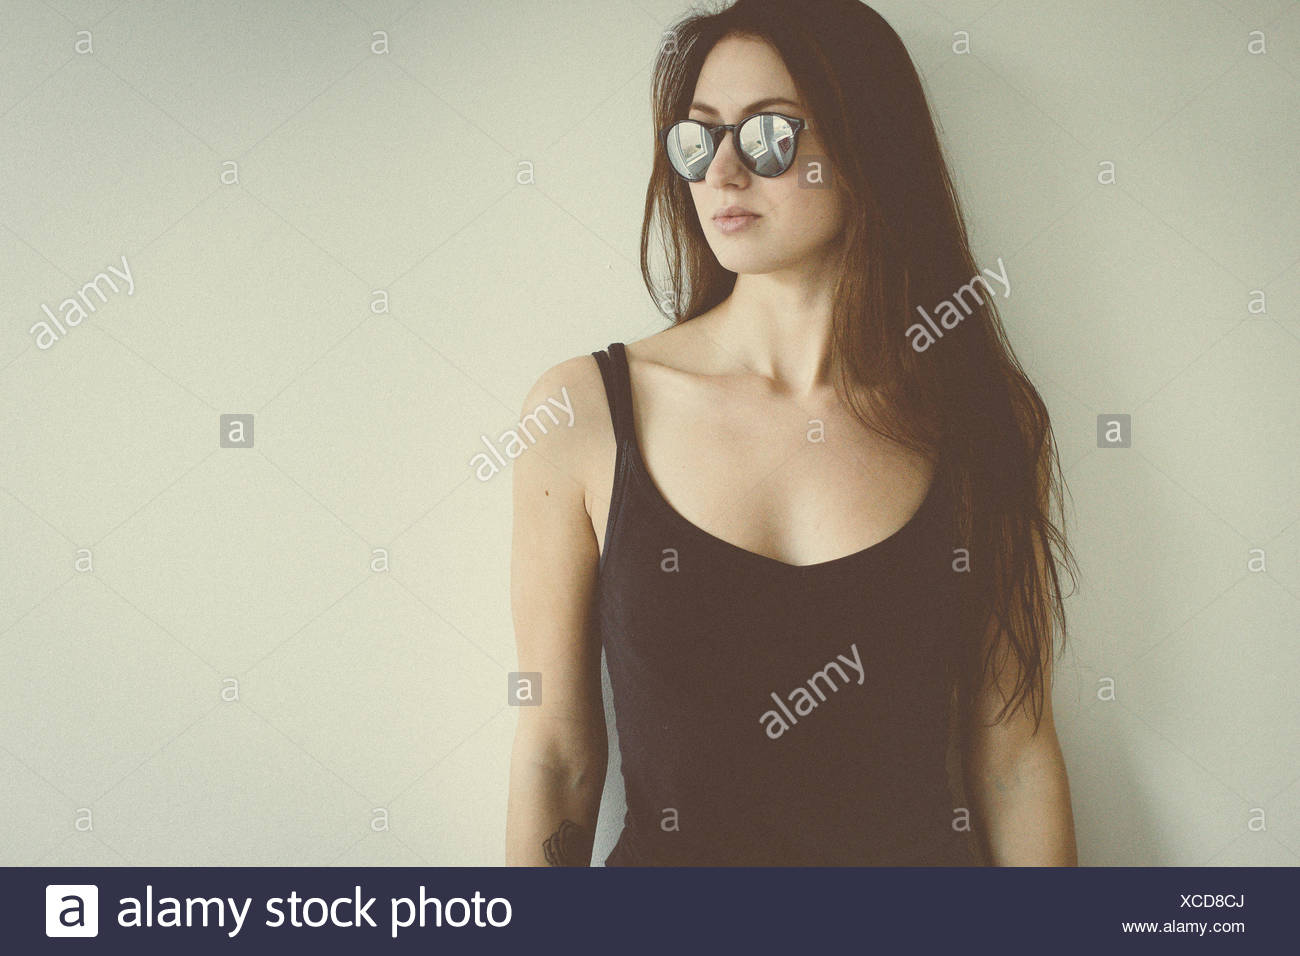 Young woman with sunglasses, portrait - Stock Image